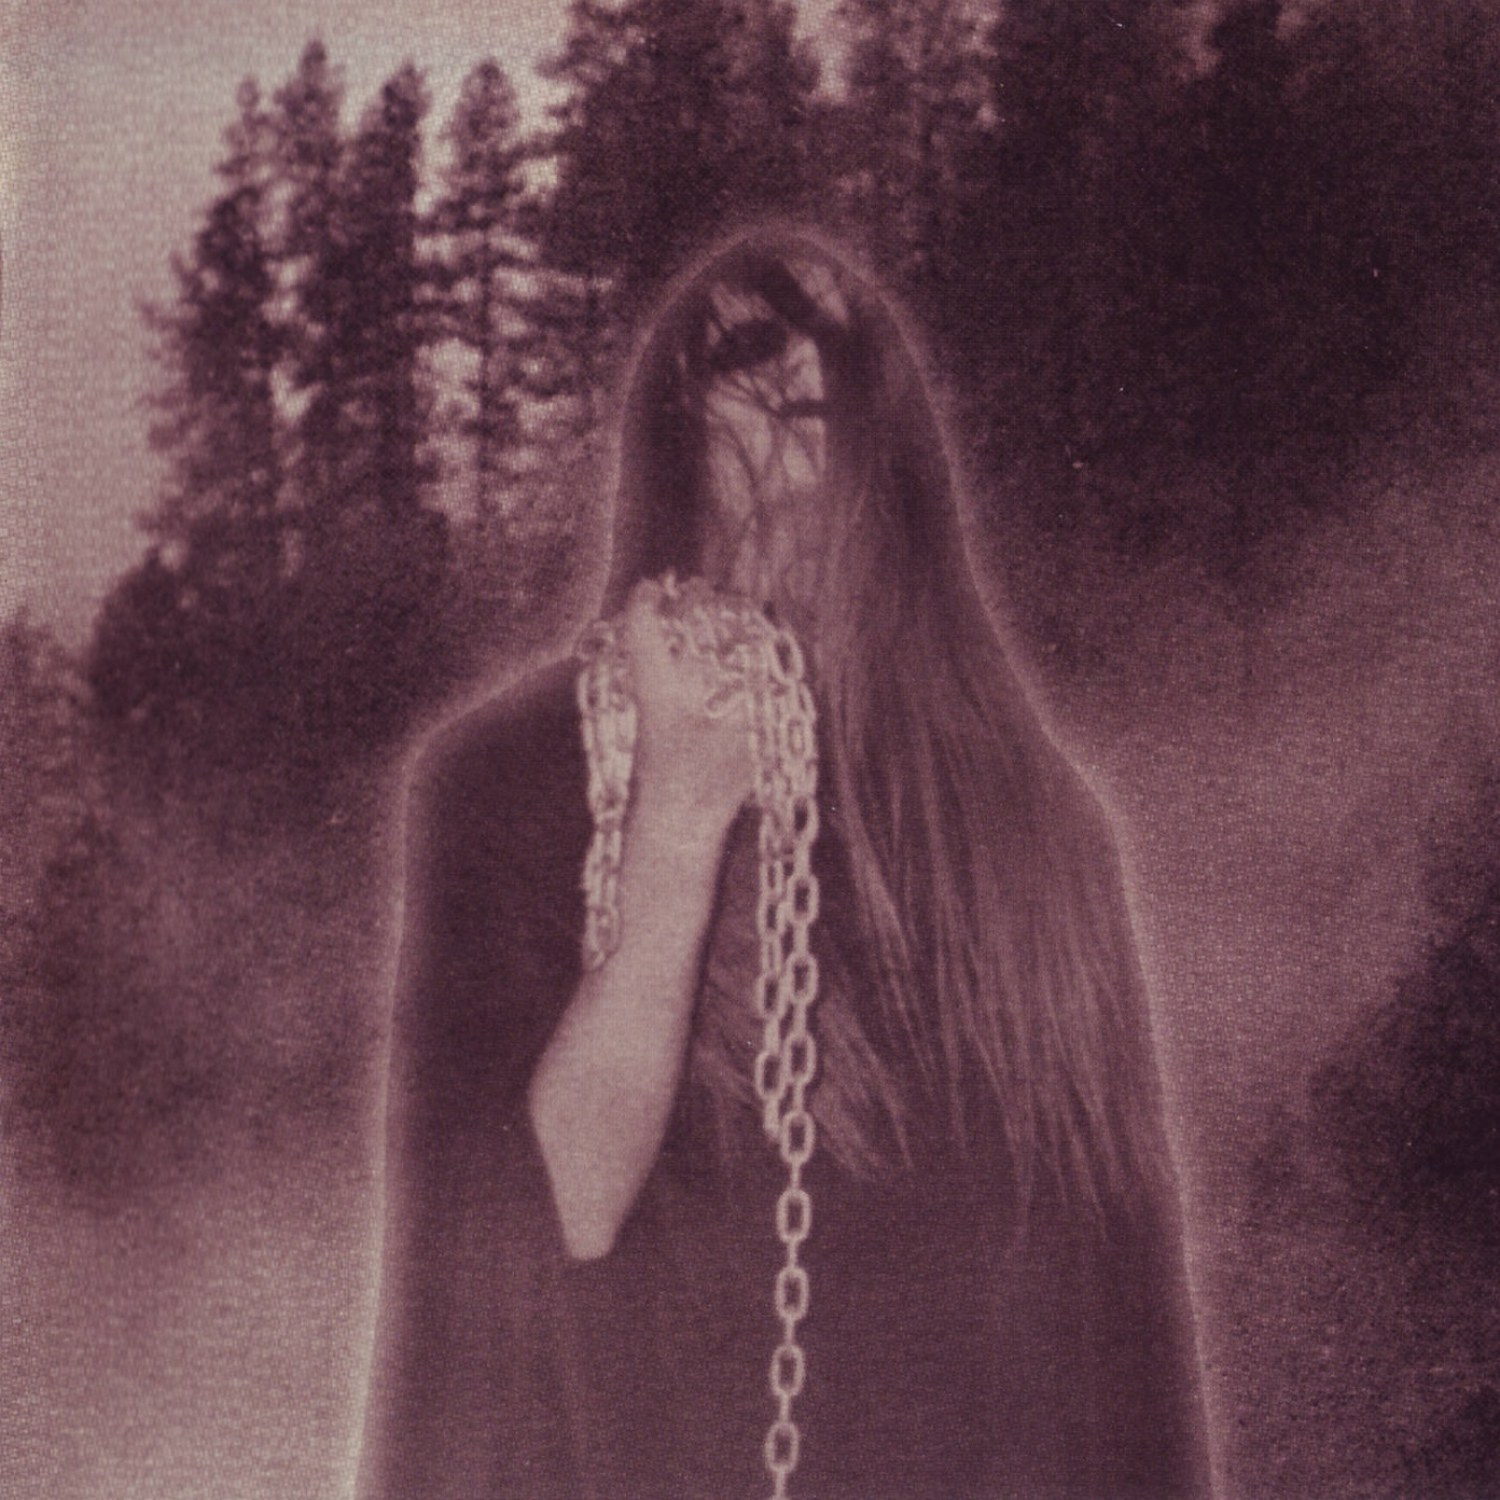 Review for Taake - Over Bjoergvin Graater Himmerik